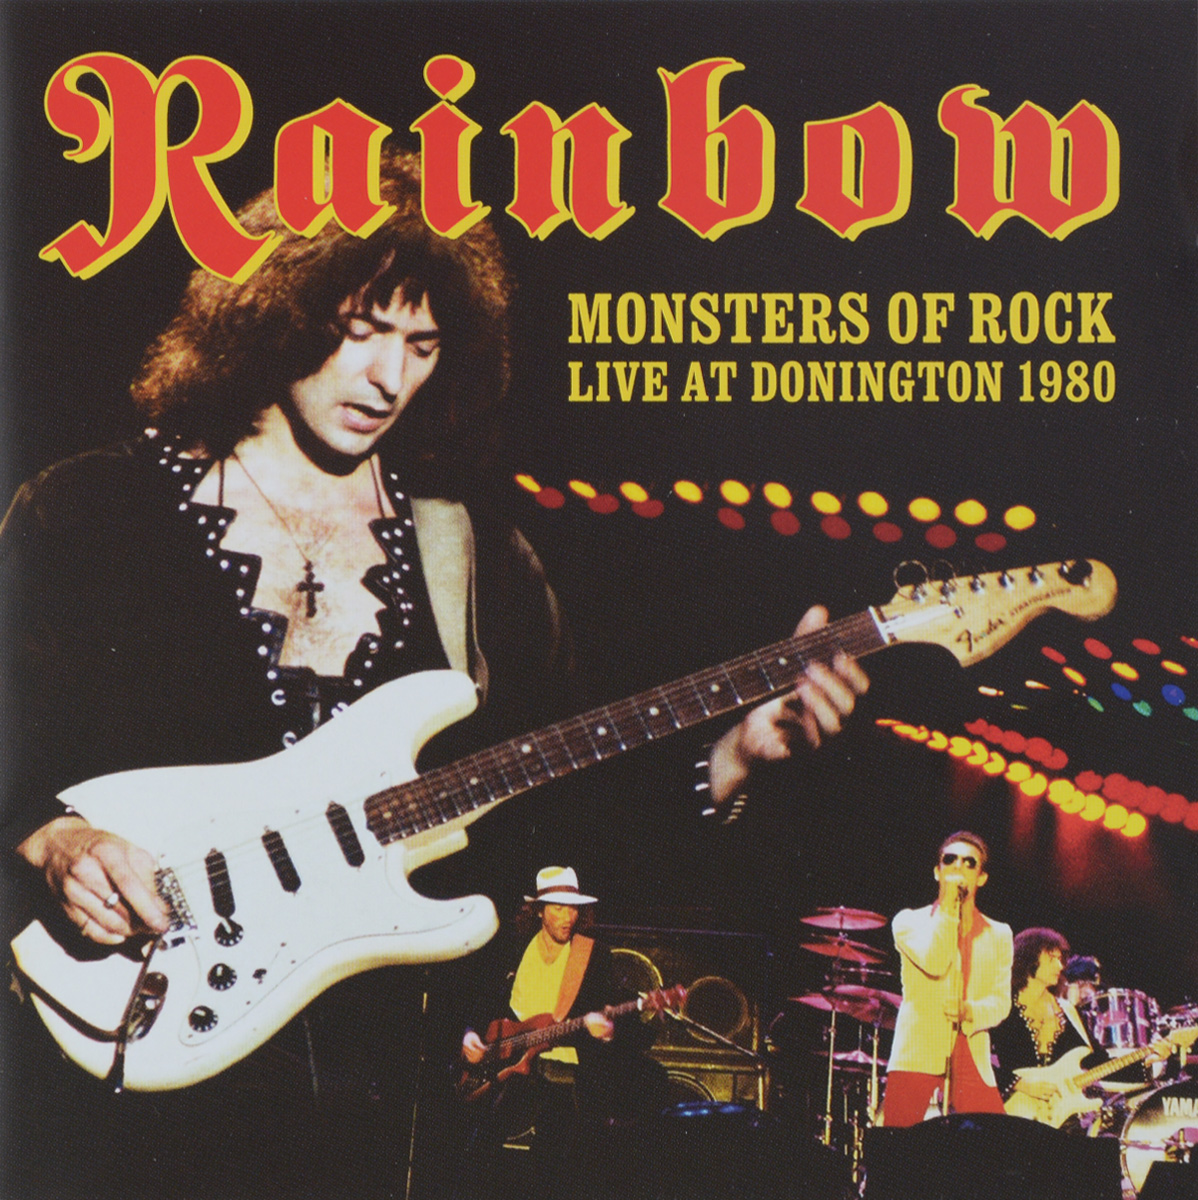 Rainbow Rainbow. Monsters Of Rock. Live At Donington 1980 (CD + DVD) vier promille ein letzter gruss live in leipzig 2007 dvd 2 cd